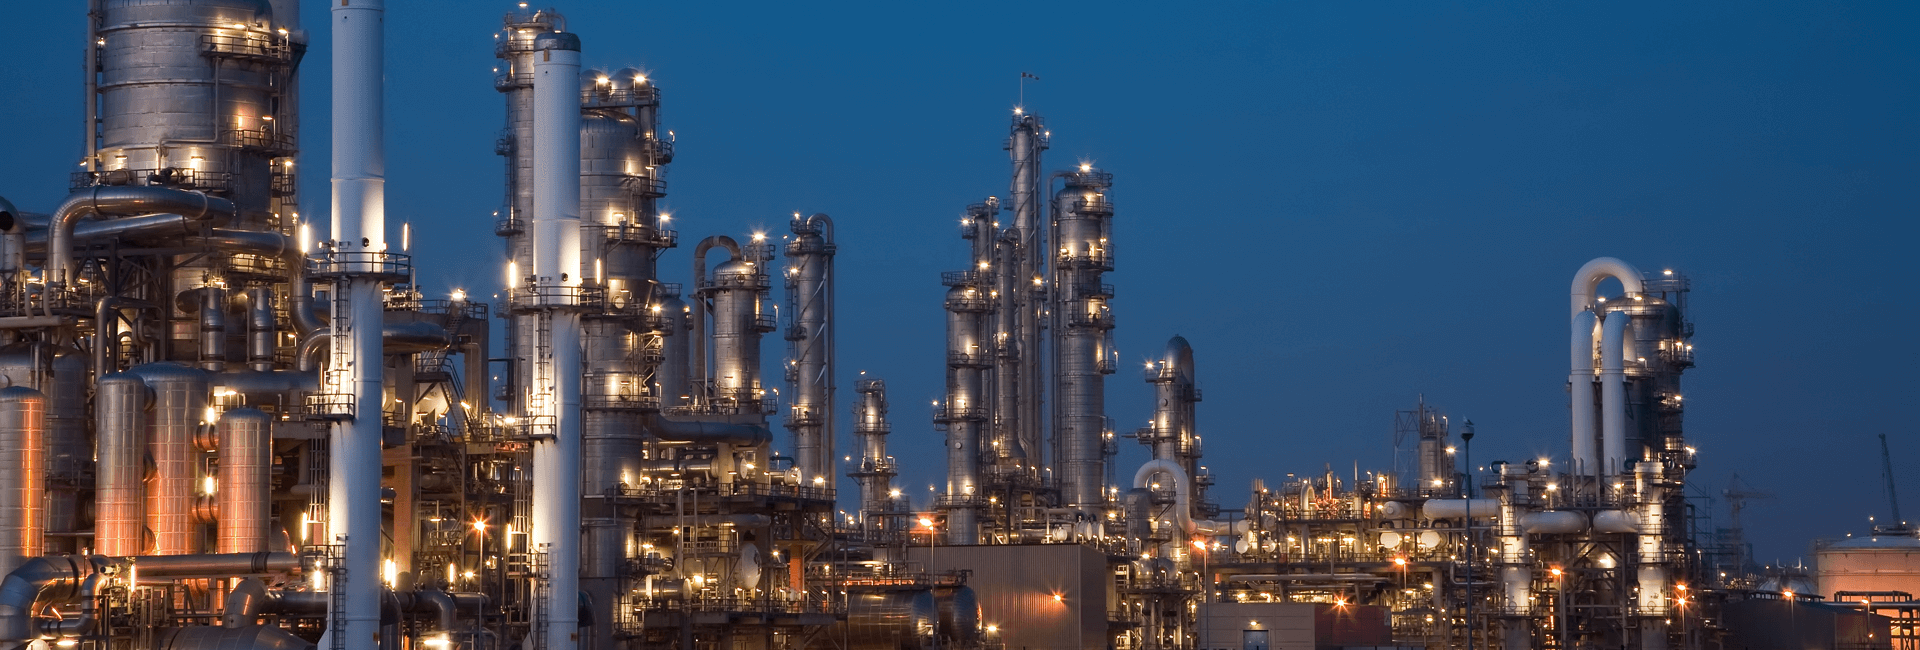 01g-11-Chemical-plant-have-a-wide-range-of-needs-for-corrosion-protection-on-equipment-and-piping---shutterstock_55078852-background-thin